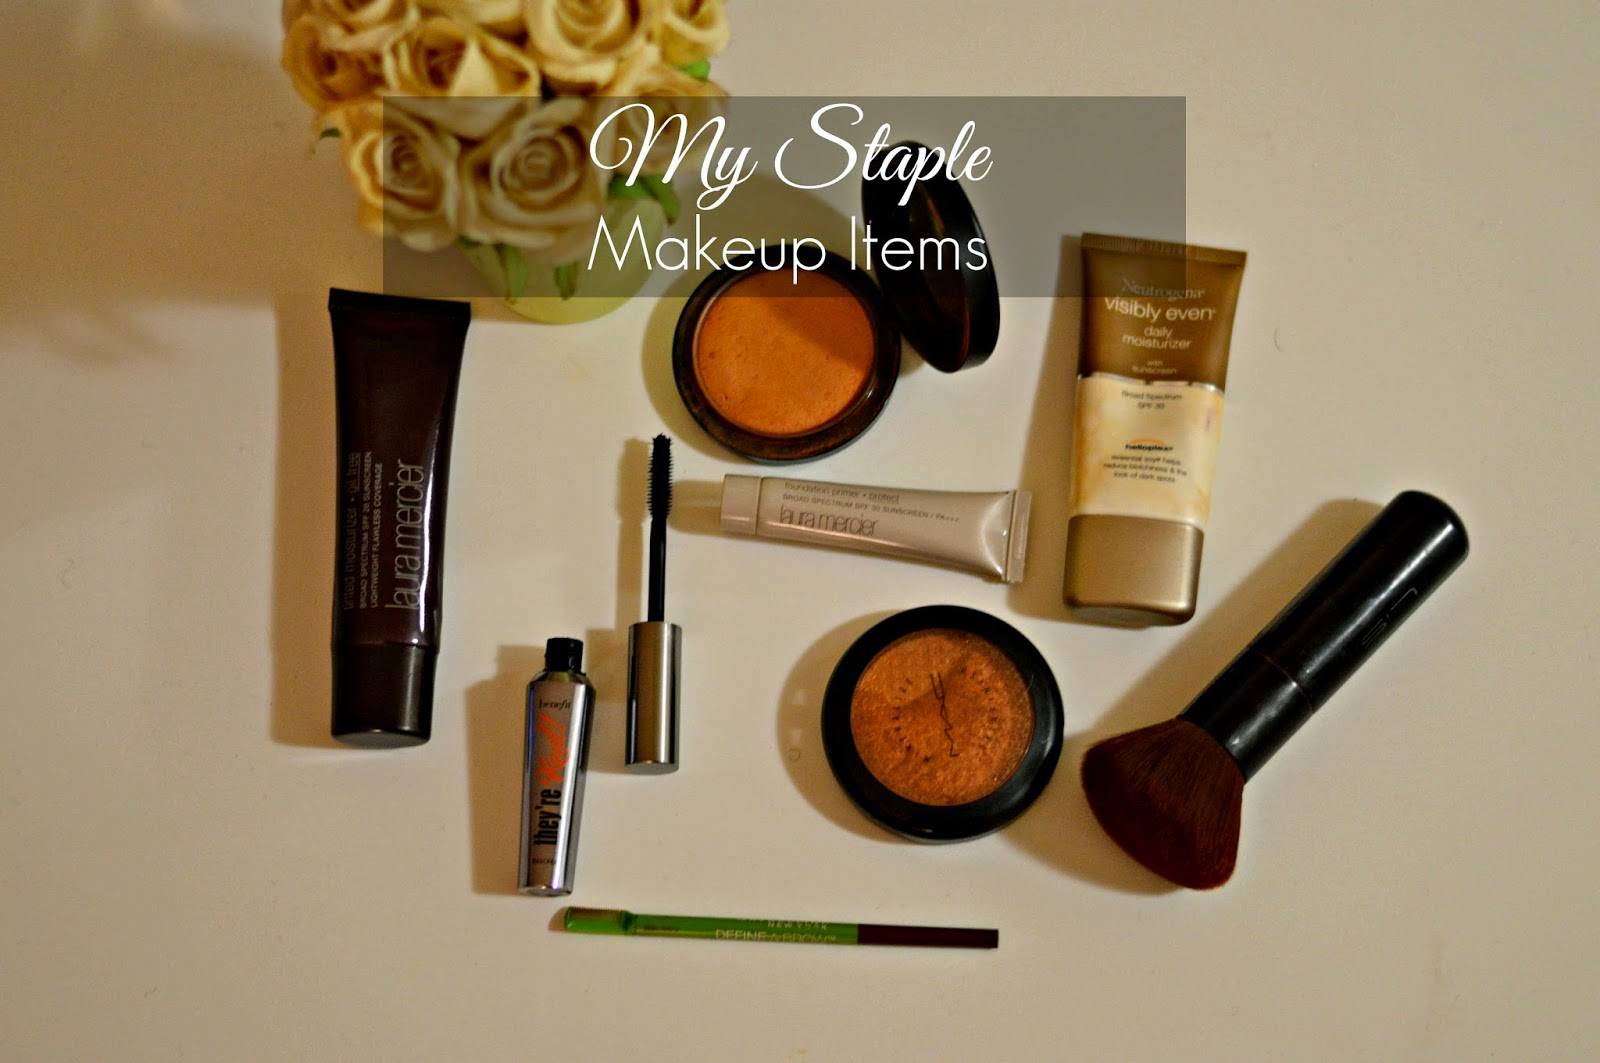 My Staple Makeup Items